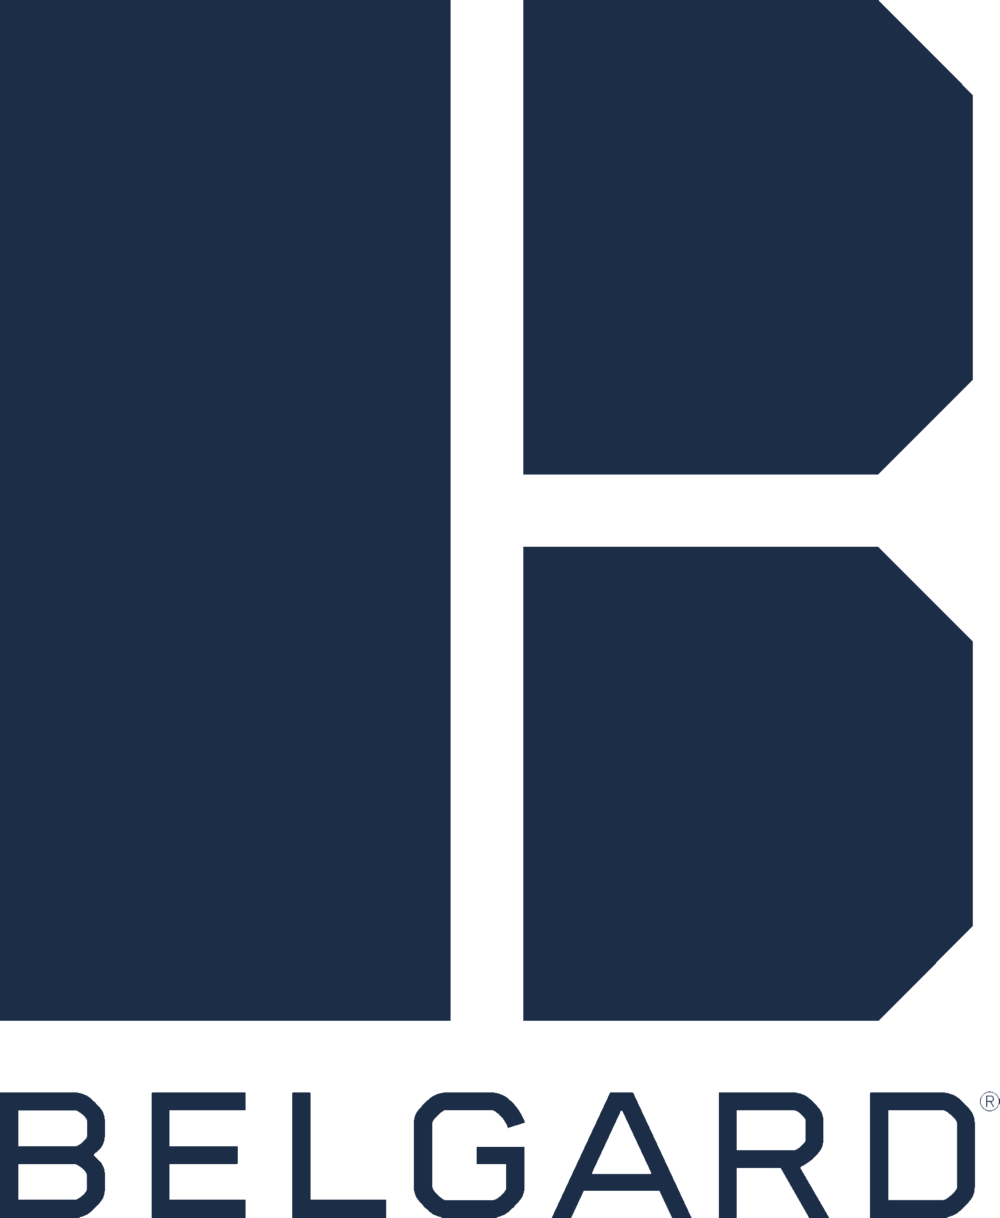 Belgard_logo_solid_CMYK_navy_Big-Projects.png